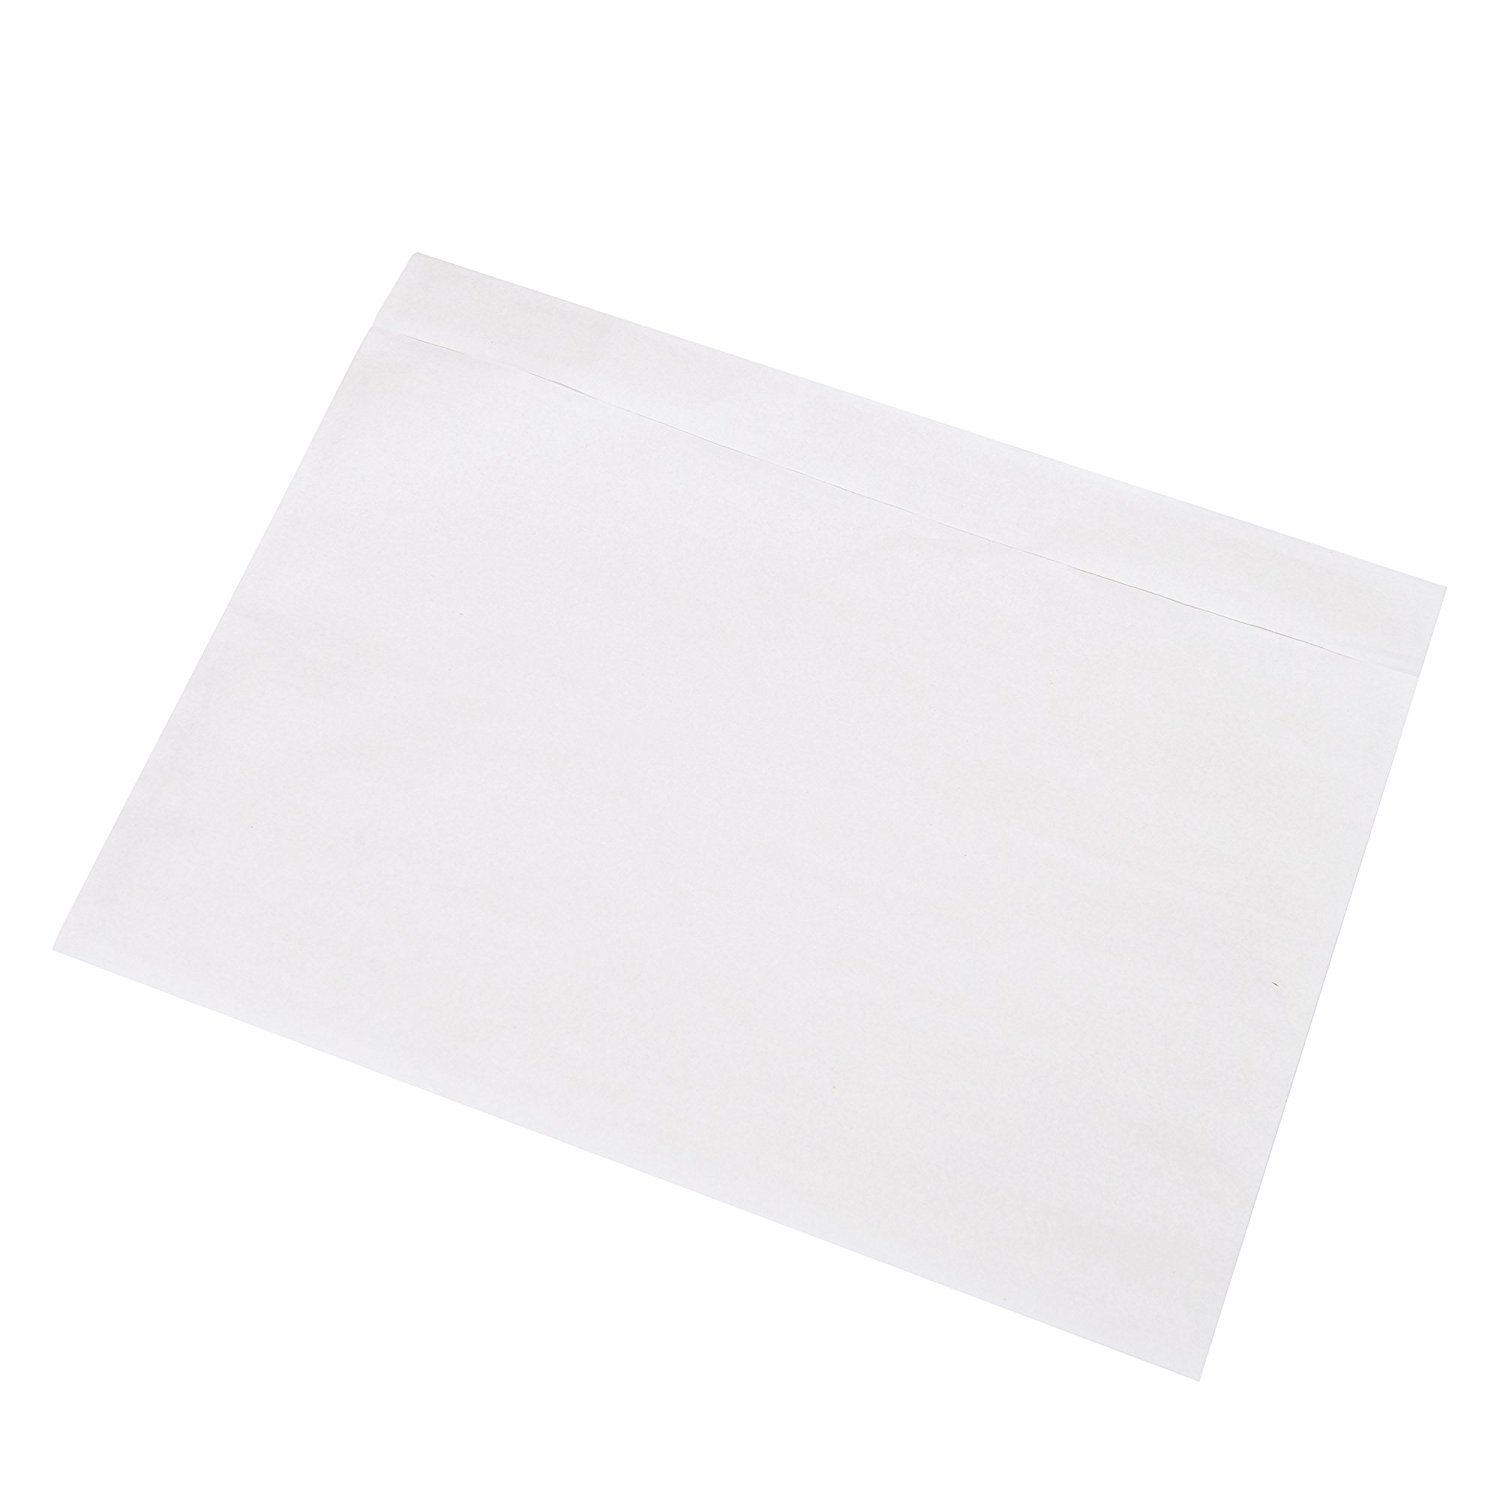 MFLABEL - Clear Adhesive Top Loading Packing List 7.5'' x 5.5'' Shipping Label Envelopes Pouches - 500pcs by MFLABEL (Image #4)